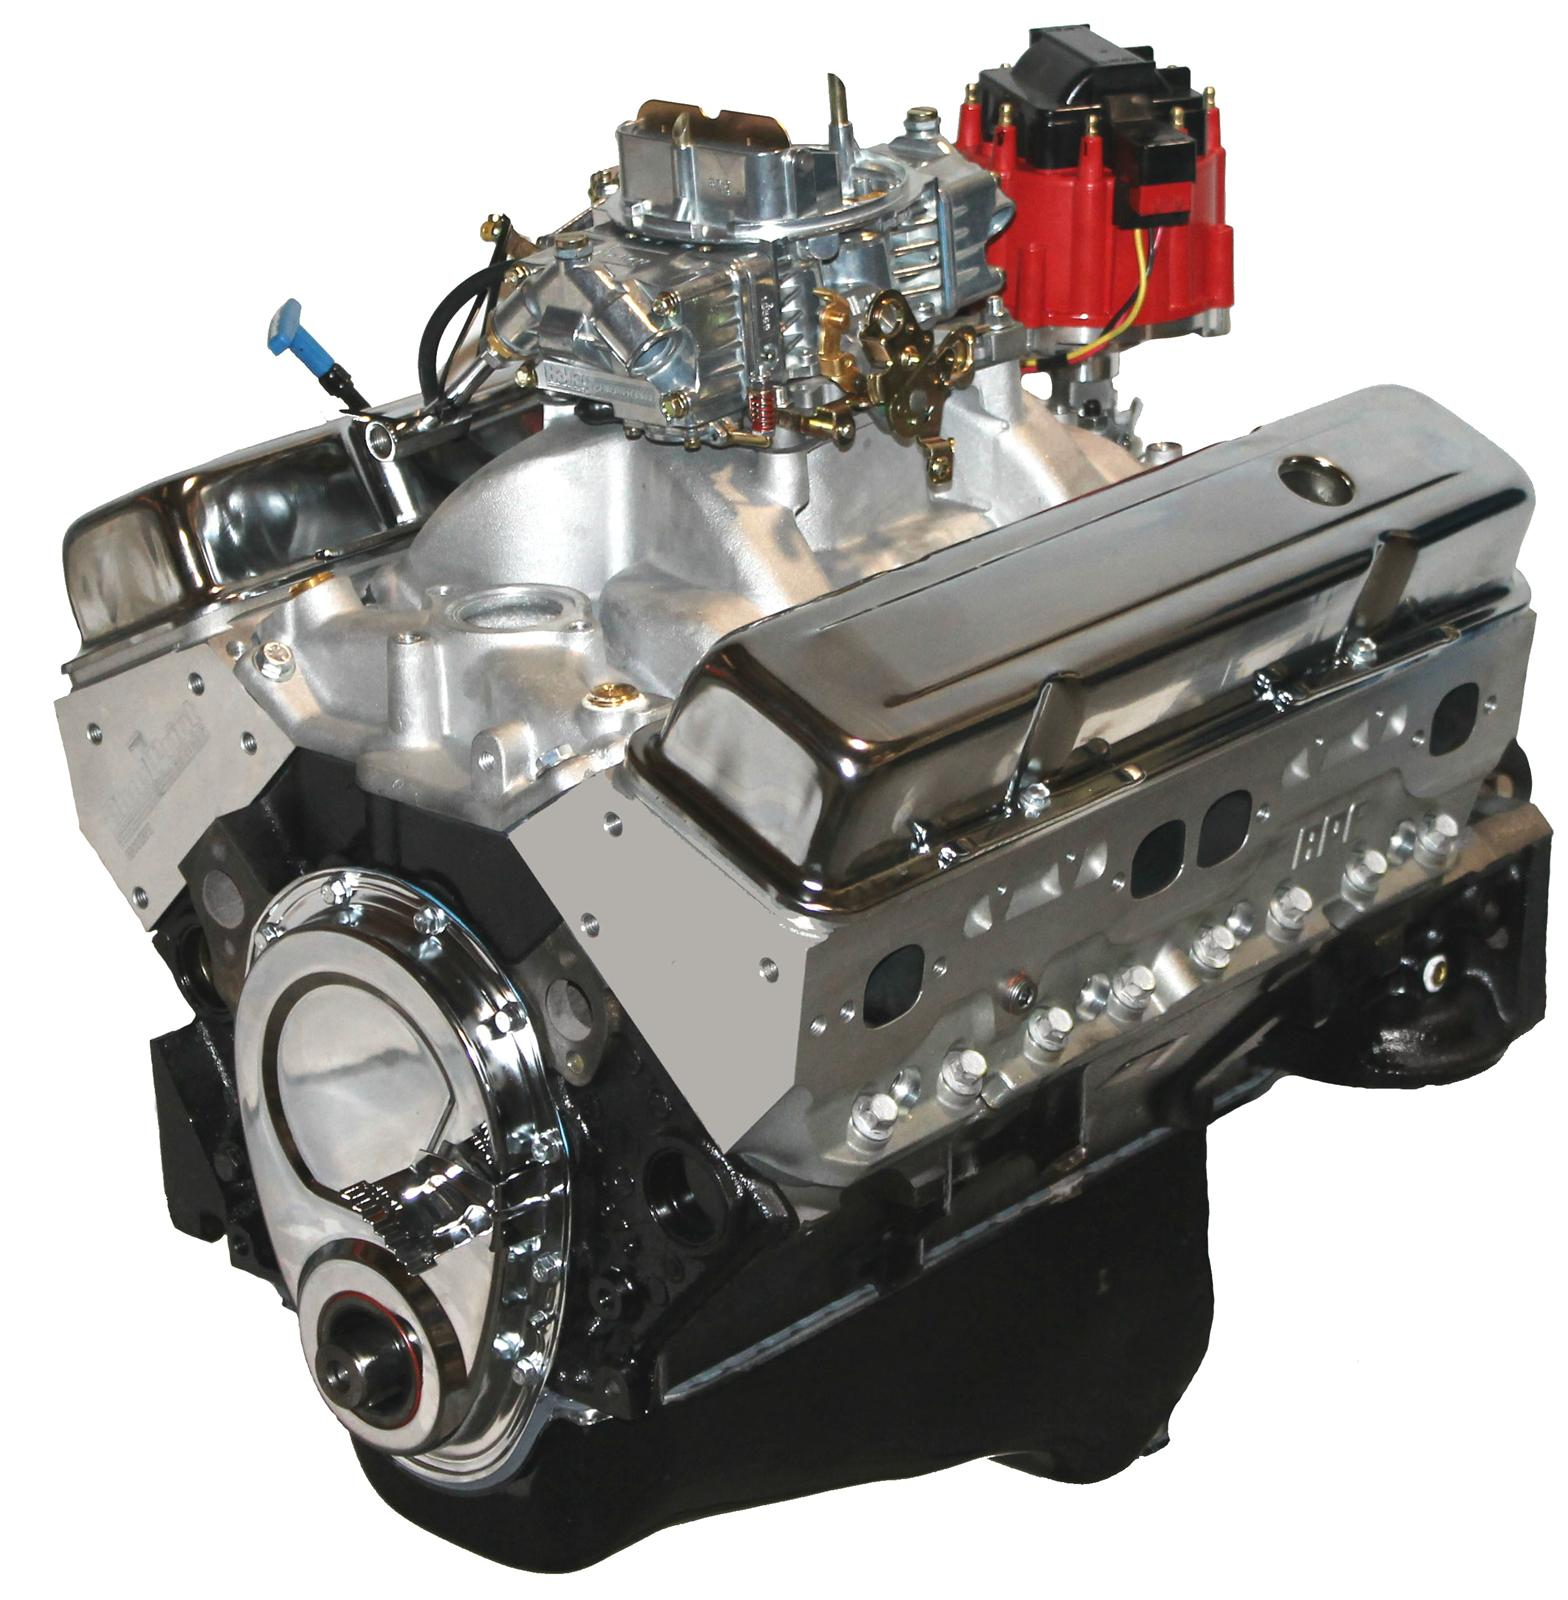 Blueprint engines gm 383 cid 430hp stroker base dressed crate blueprint engines gm 383 cid 430hp stroker base dressed crate engines w aluminum heads bp38313ctc1 free shipping on orders over 99 at summit racing malvernweather Gallery